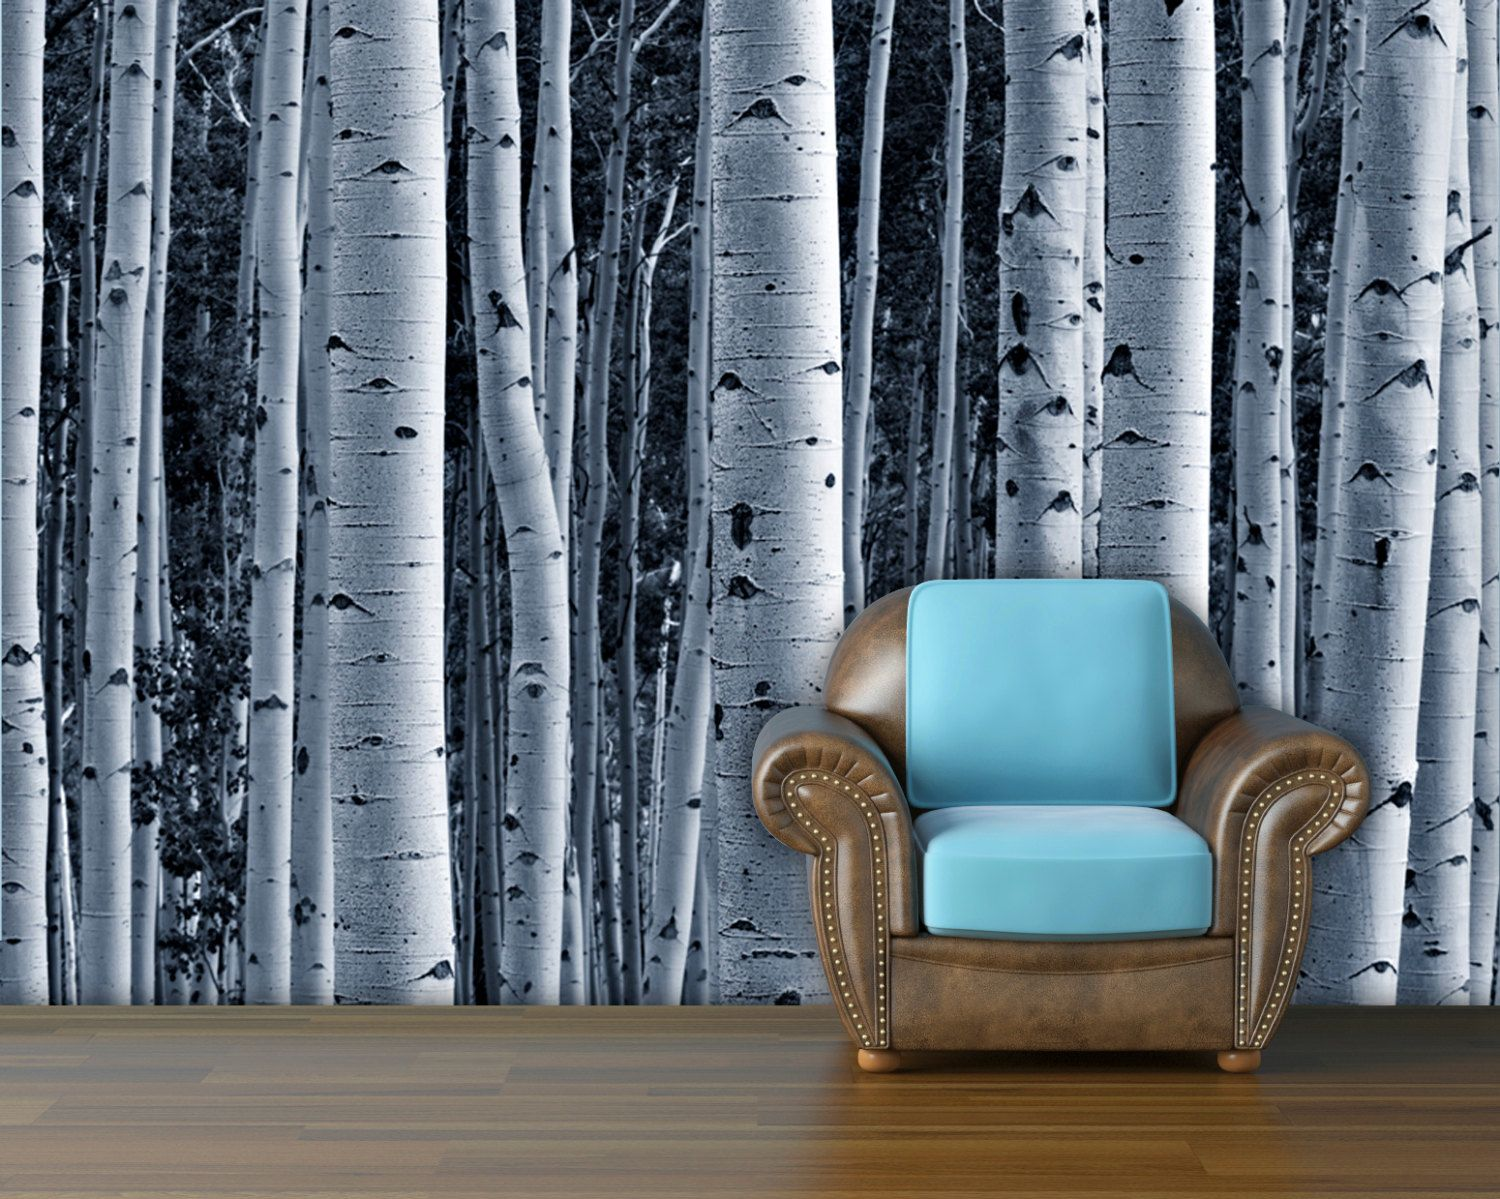 Items Similar To Autumn Park Of Red Beech Trees Mural Wallpaper,  Repositionable Peel U0026 Stick Wall Paper, Wall Covering On Etsy Part 2